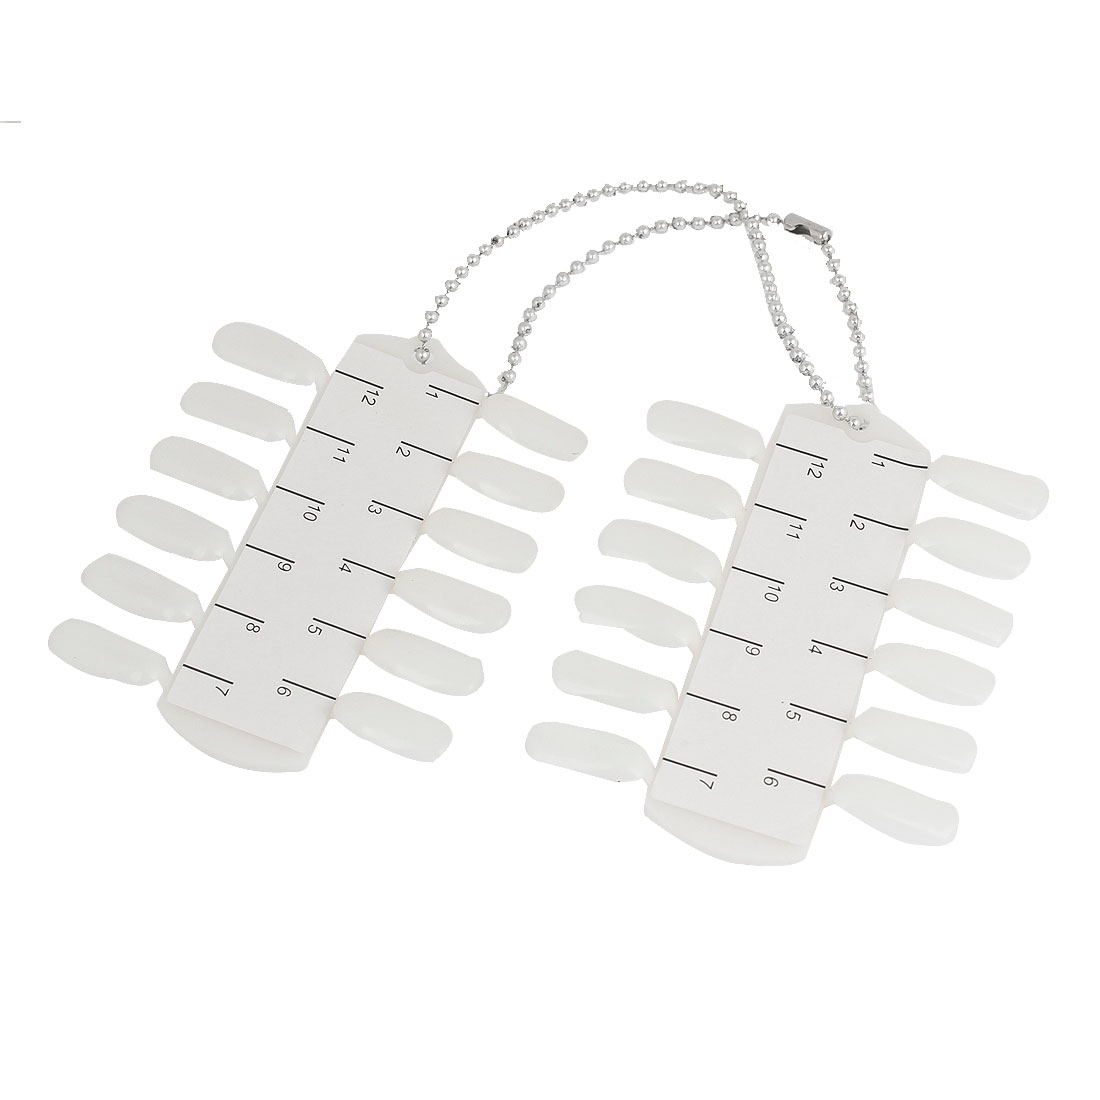 24 Pcs White Plastic DIY Fingernails Art Tip for Women